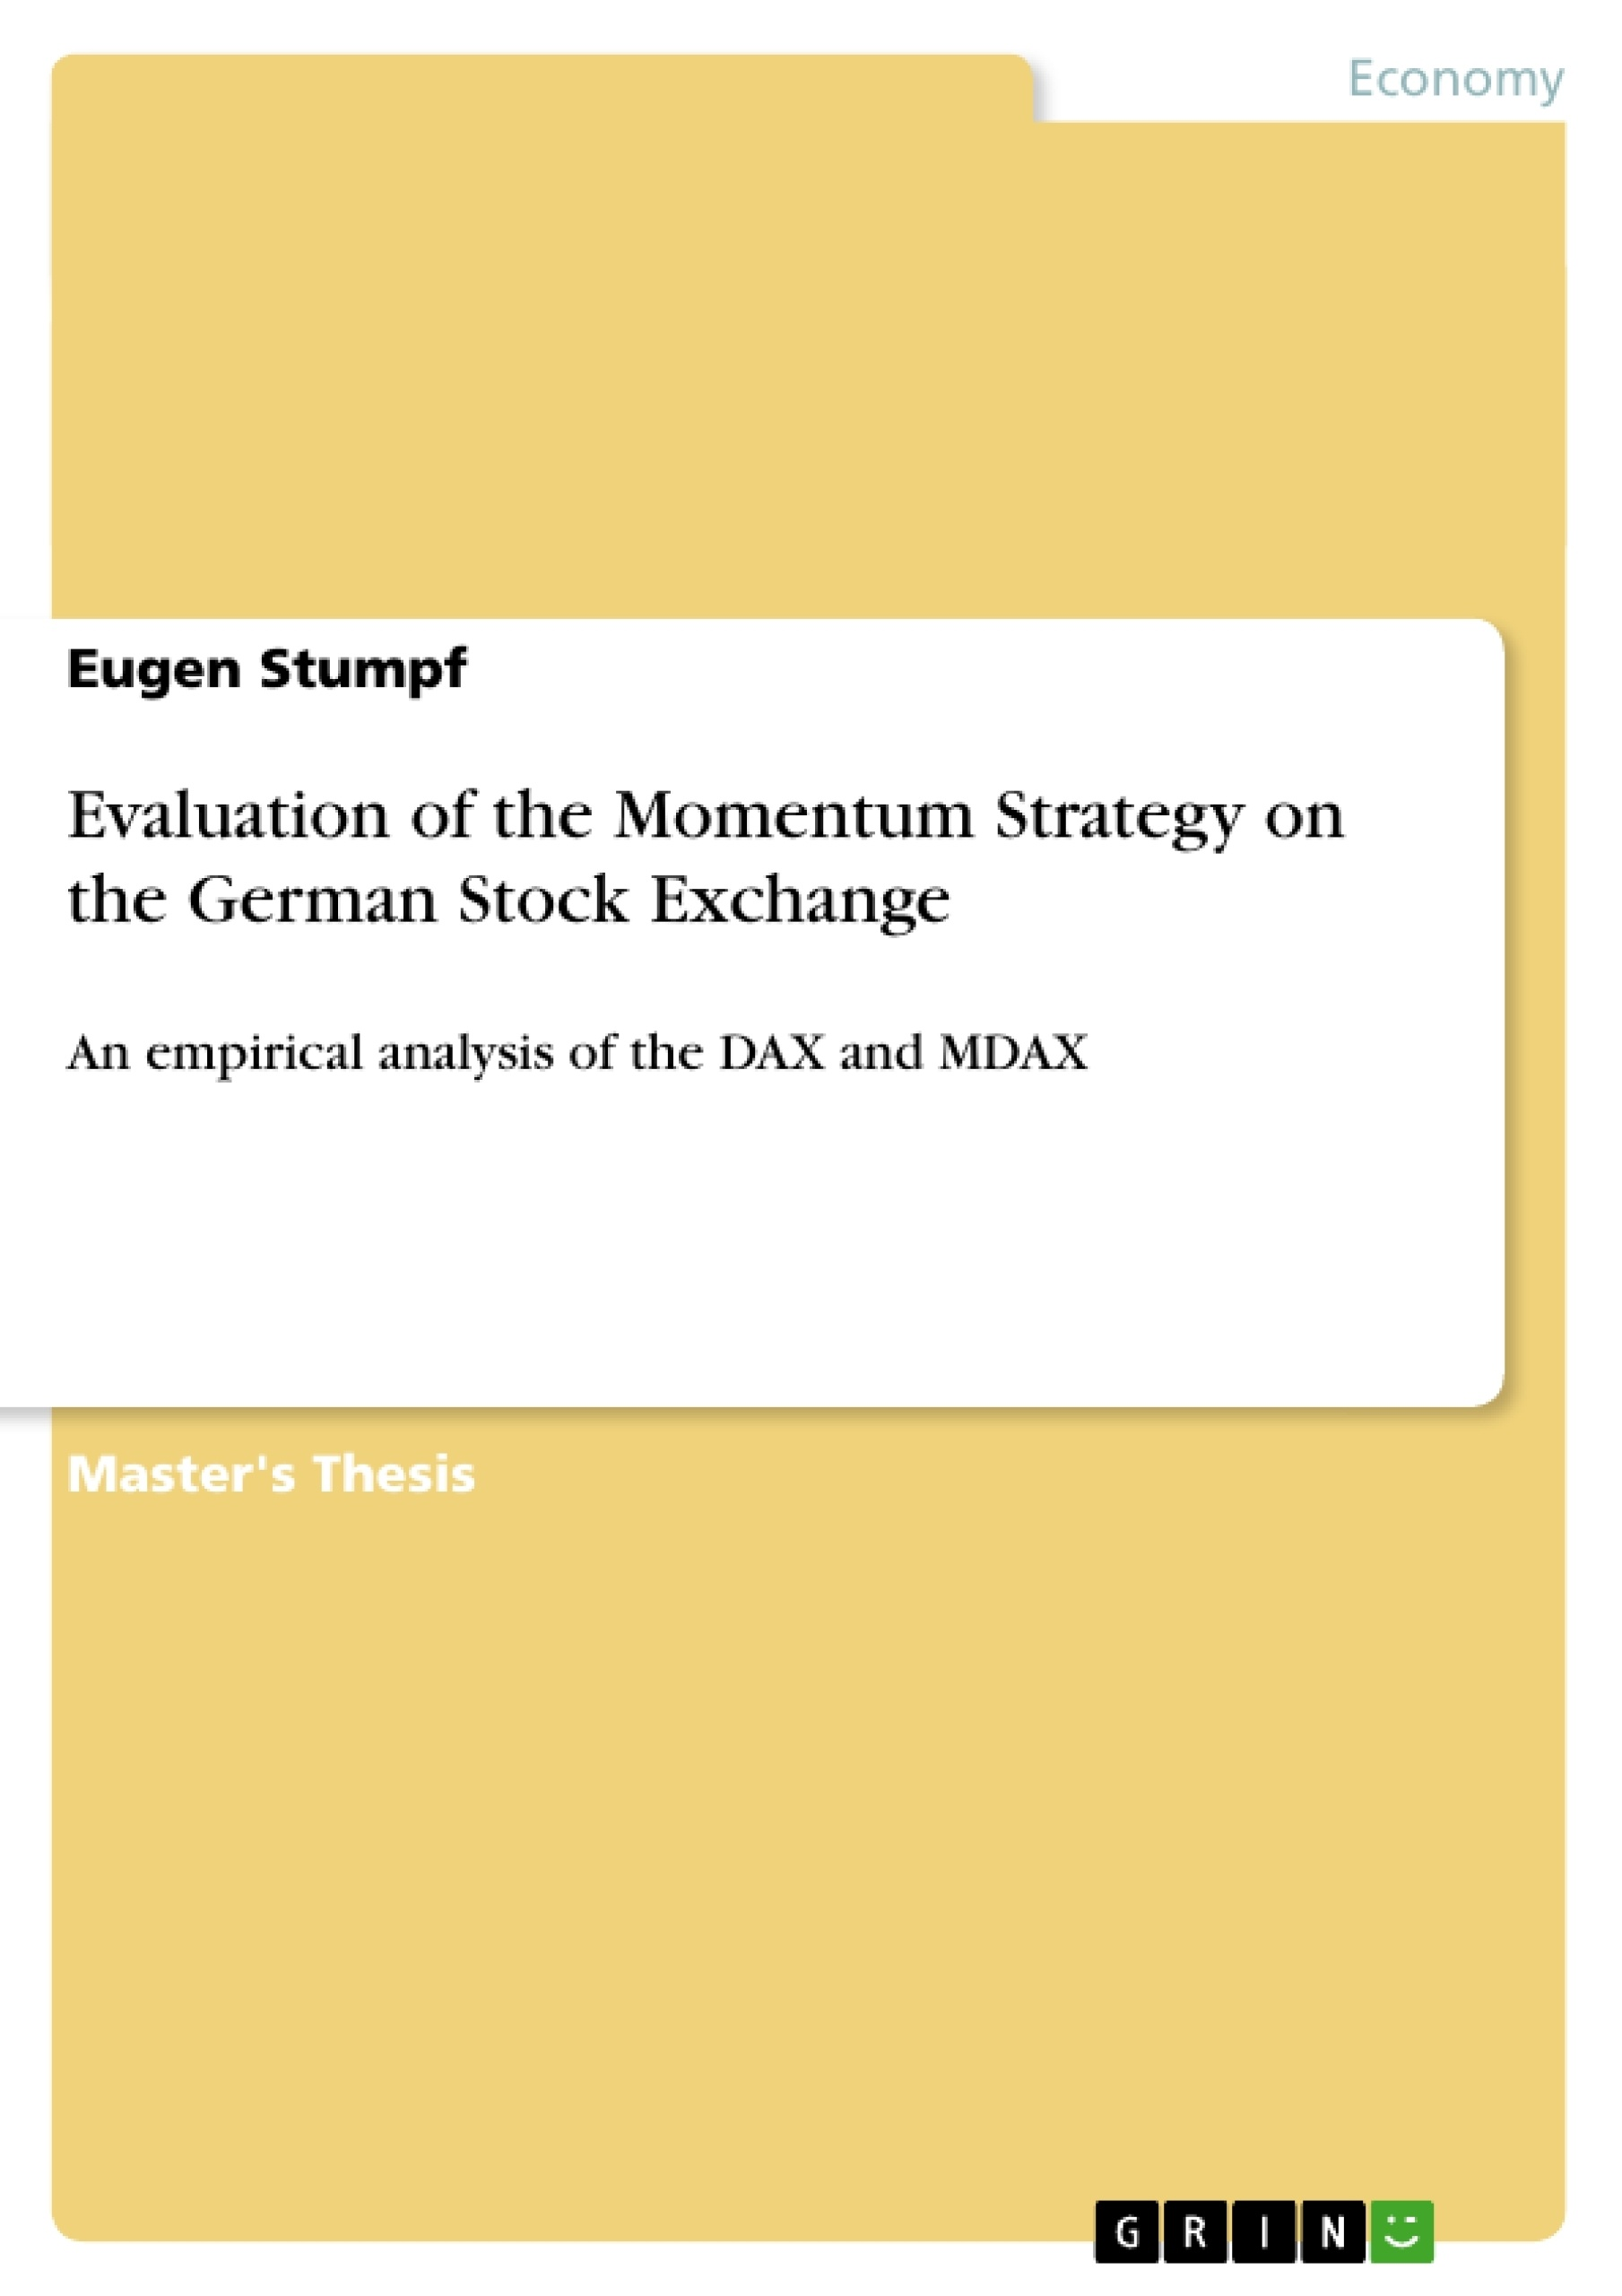 Title: Evaluation of the Momentum Strategy on the German Stock Exchange